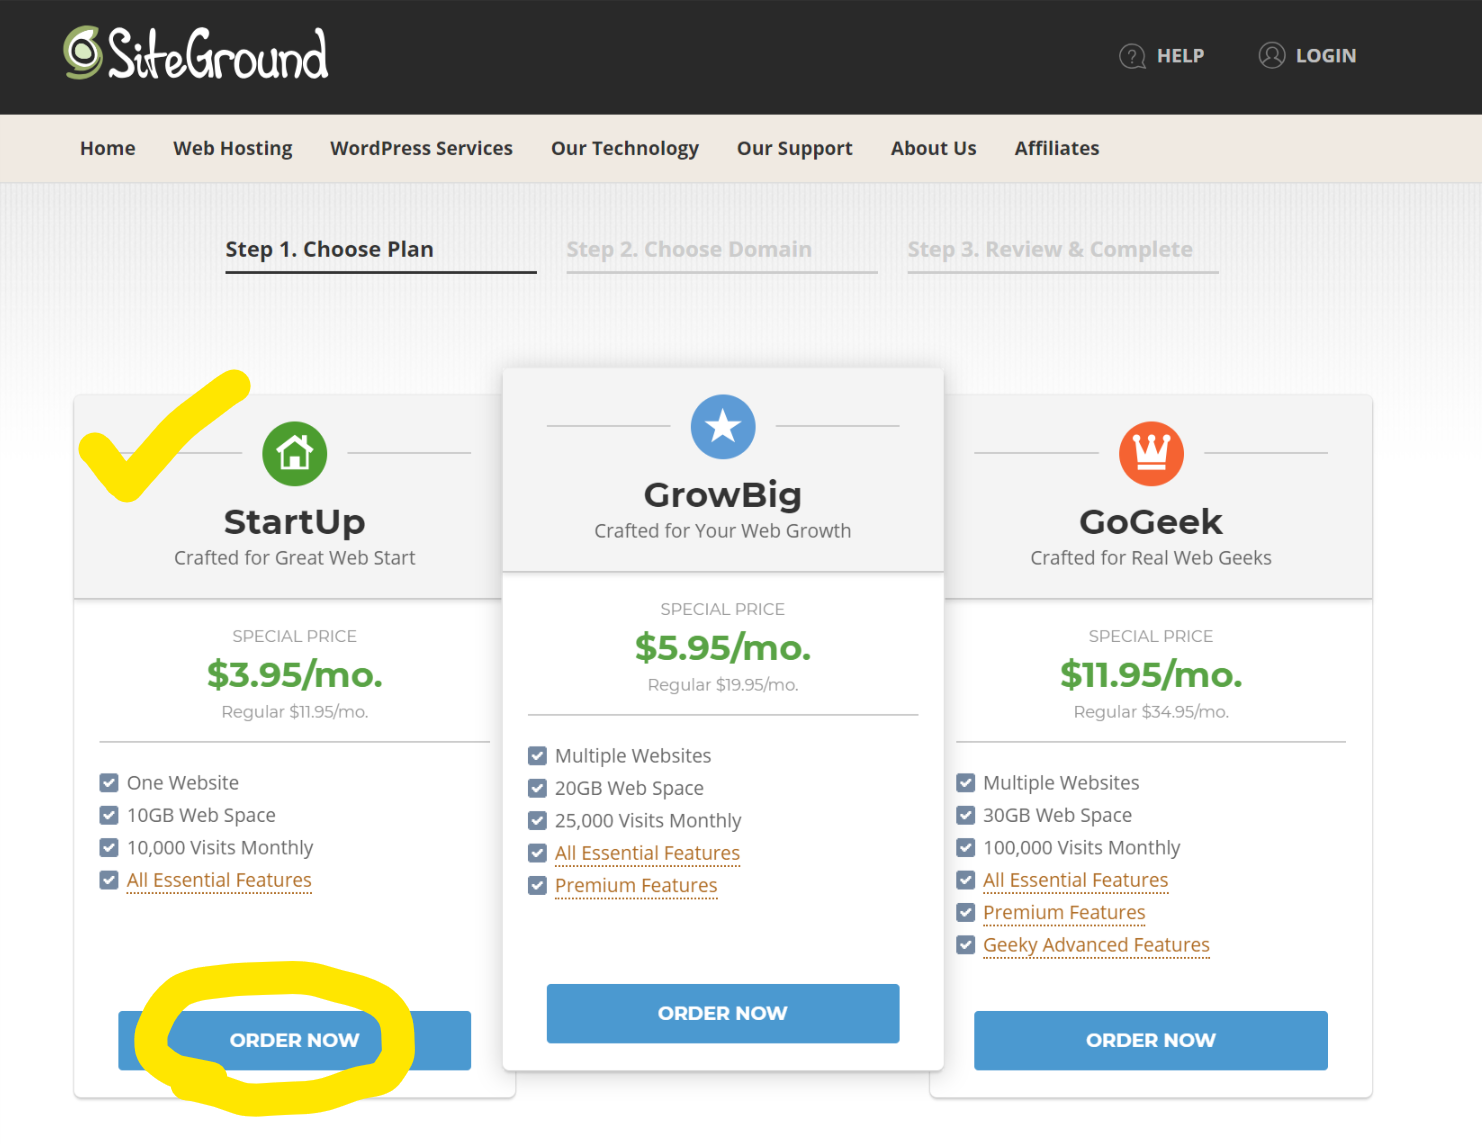 How to start a Wordpres Blog using Siteground 2